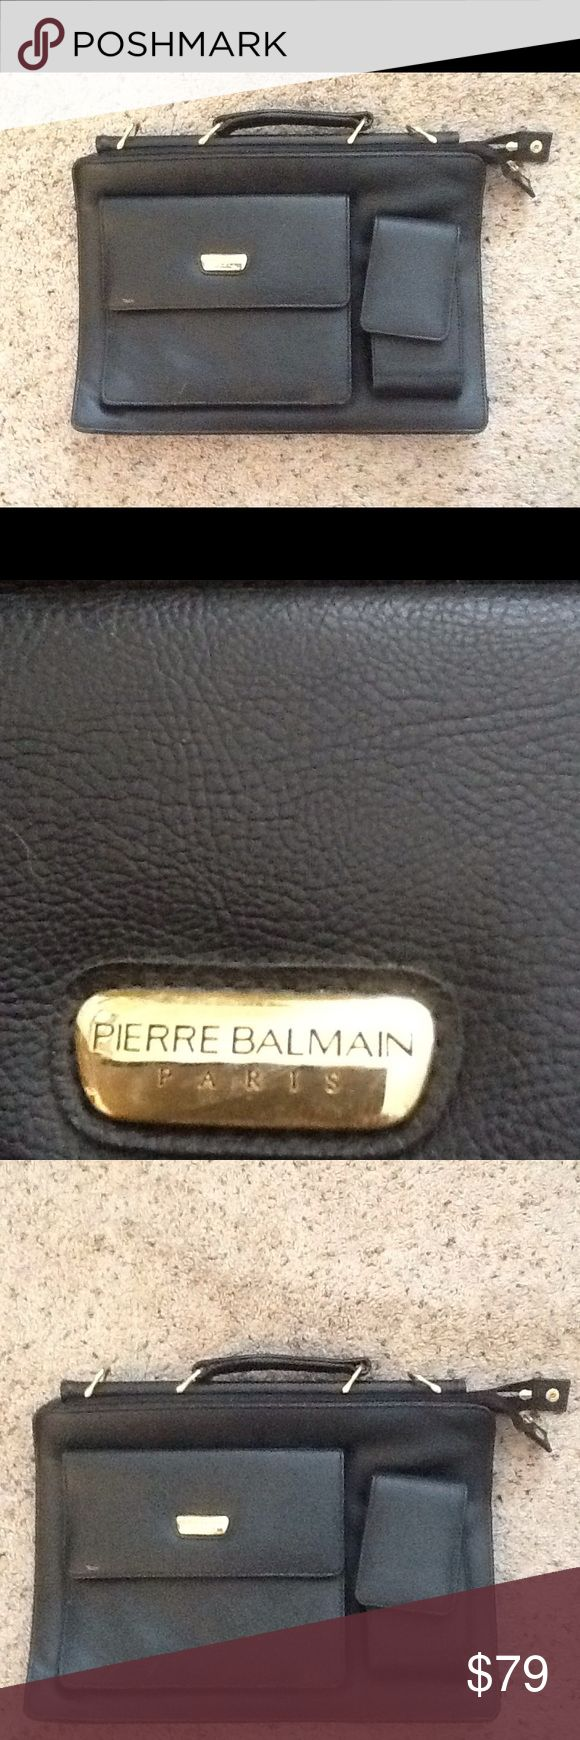 PIERRE BALMAIN BLACK LEATHER MESSENGER BRIEFCASE Pierre Balmain Paris vintage black leather messenger briefcase or laptop bag.  Gold Pierre Balmain logo.  Nice condition, with exception to a tad of discoloration on back corner, shown.  No Crossbody strap.  Sold As Is, and is a final sale. Amazing messenger. Check out my other designer items Pierre Balmain Bags Messenger Bags